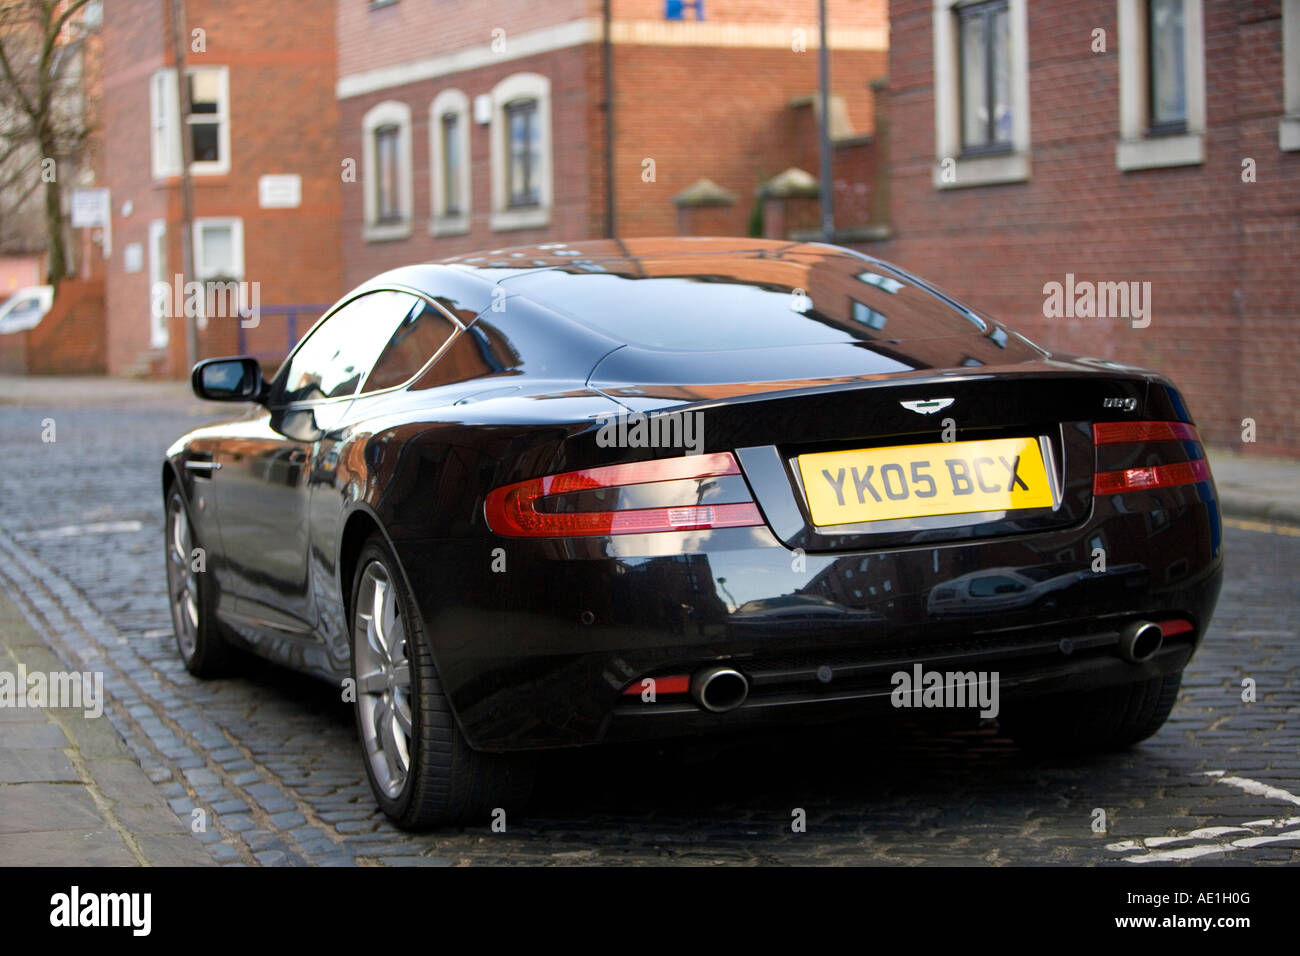 Black Aston Martin Db9 Grand Tourer Parked In Urban Town Street With